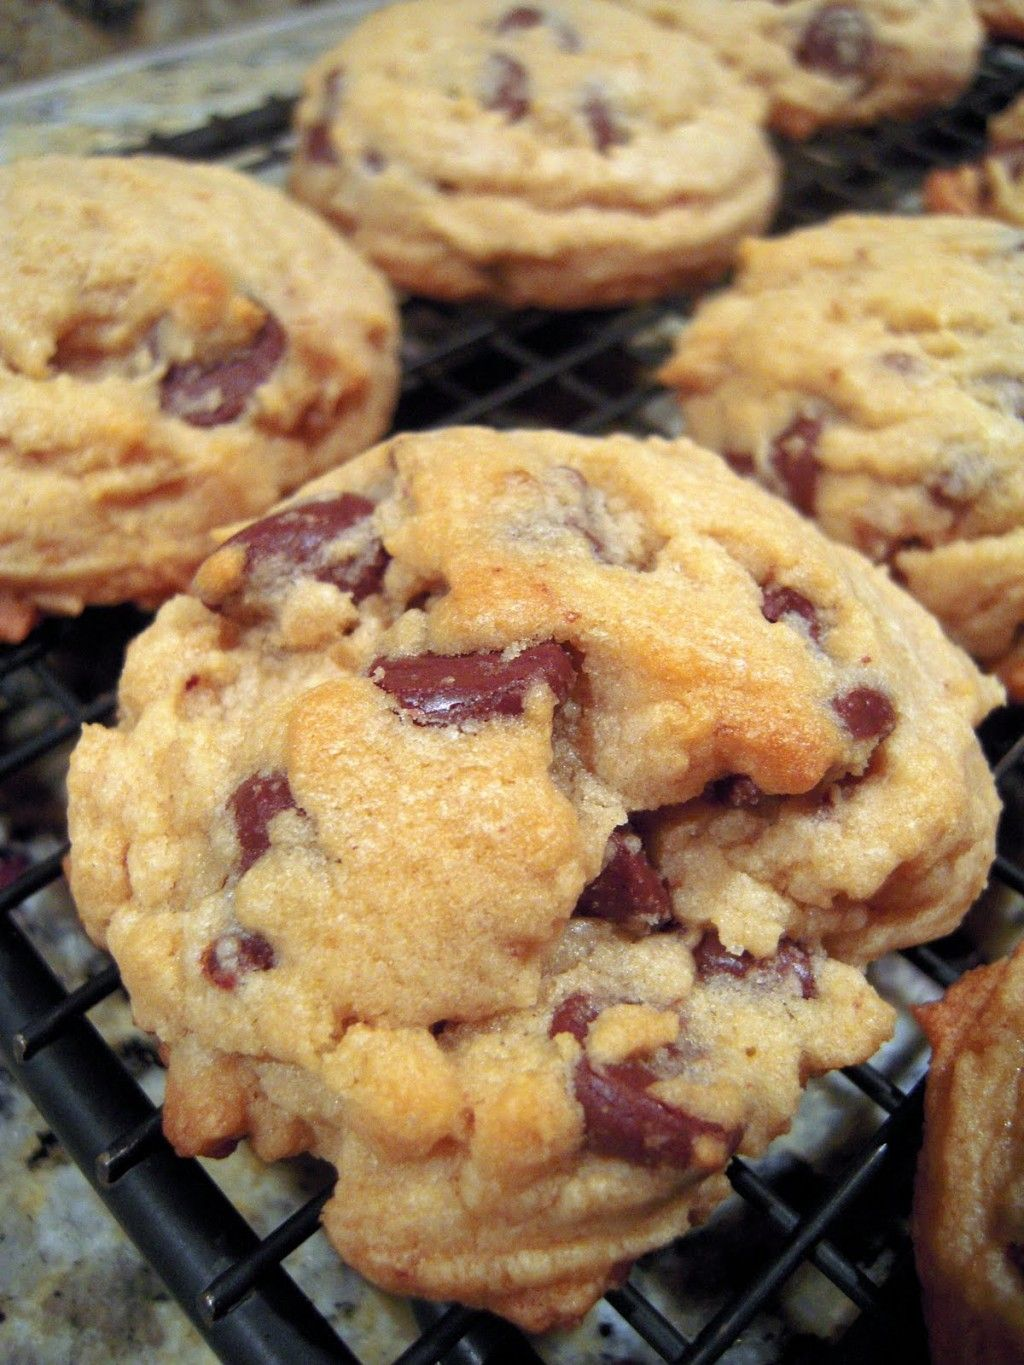 Bisquick Chocolate Chip Cookies : 8 Fabulous Bisquick Oatmeal Pancakes | Cake Decoration Idea | Hanbly.com